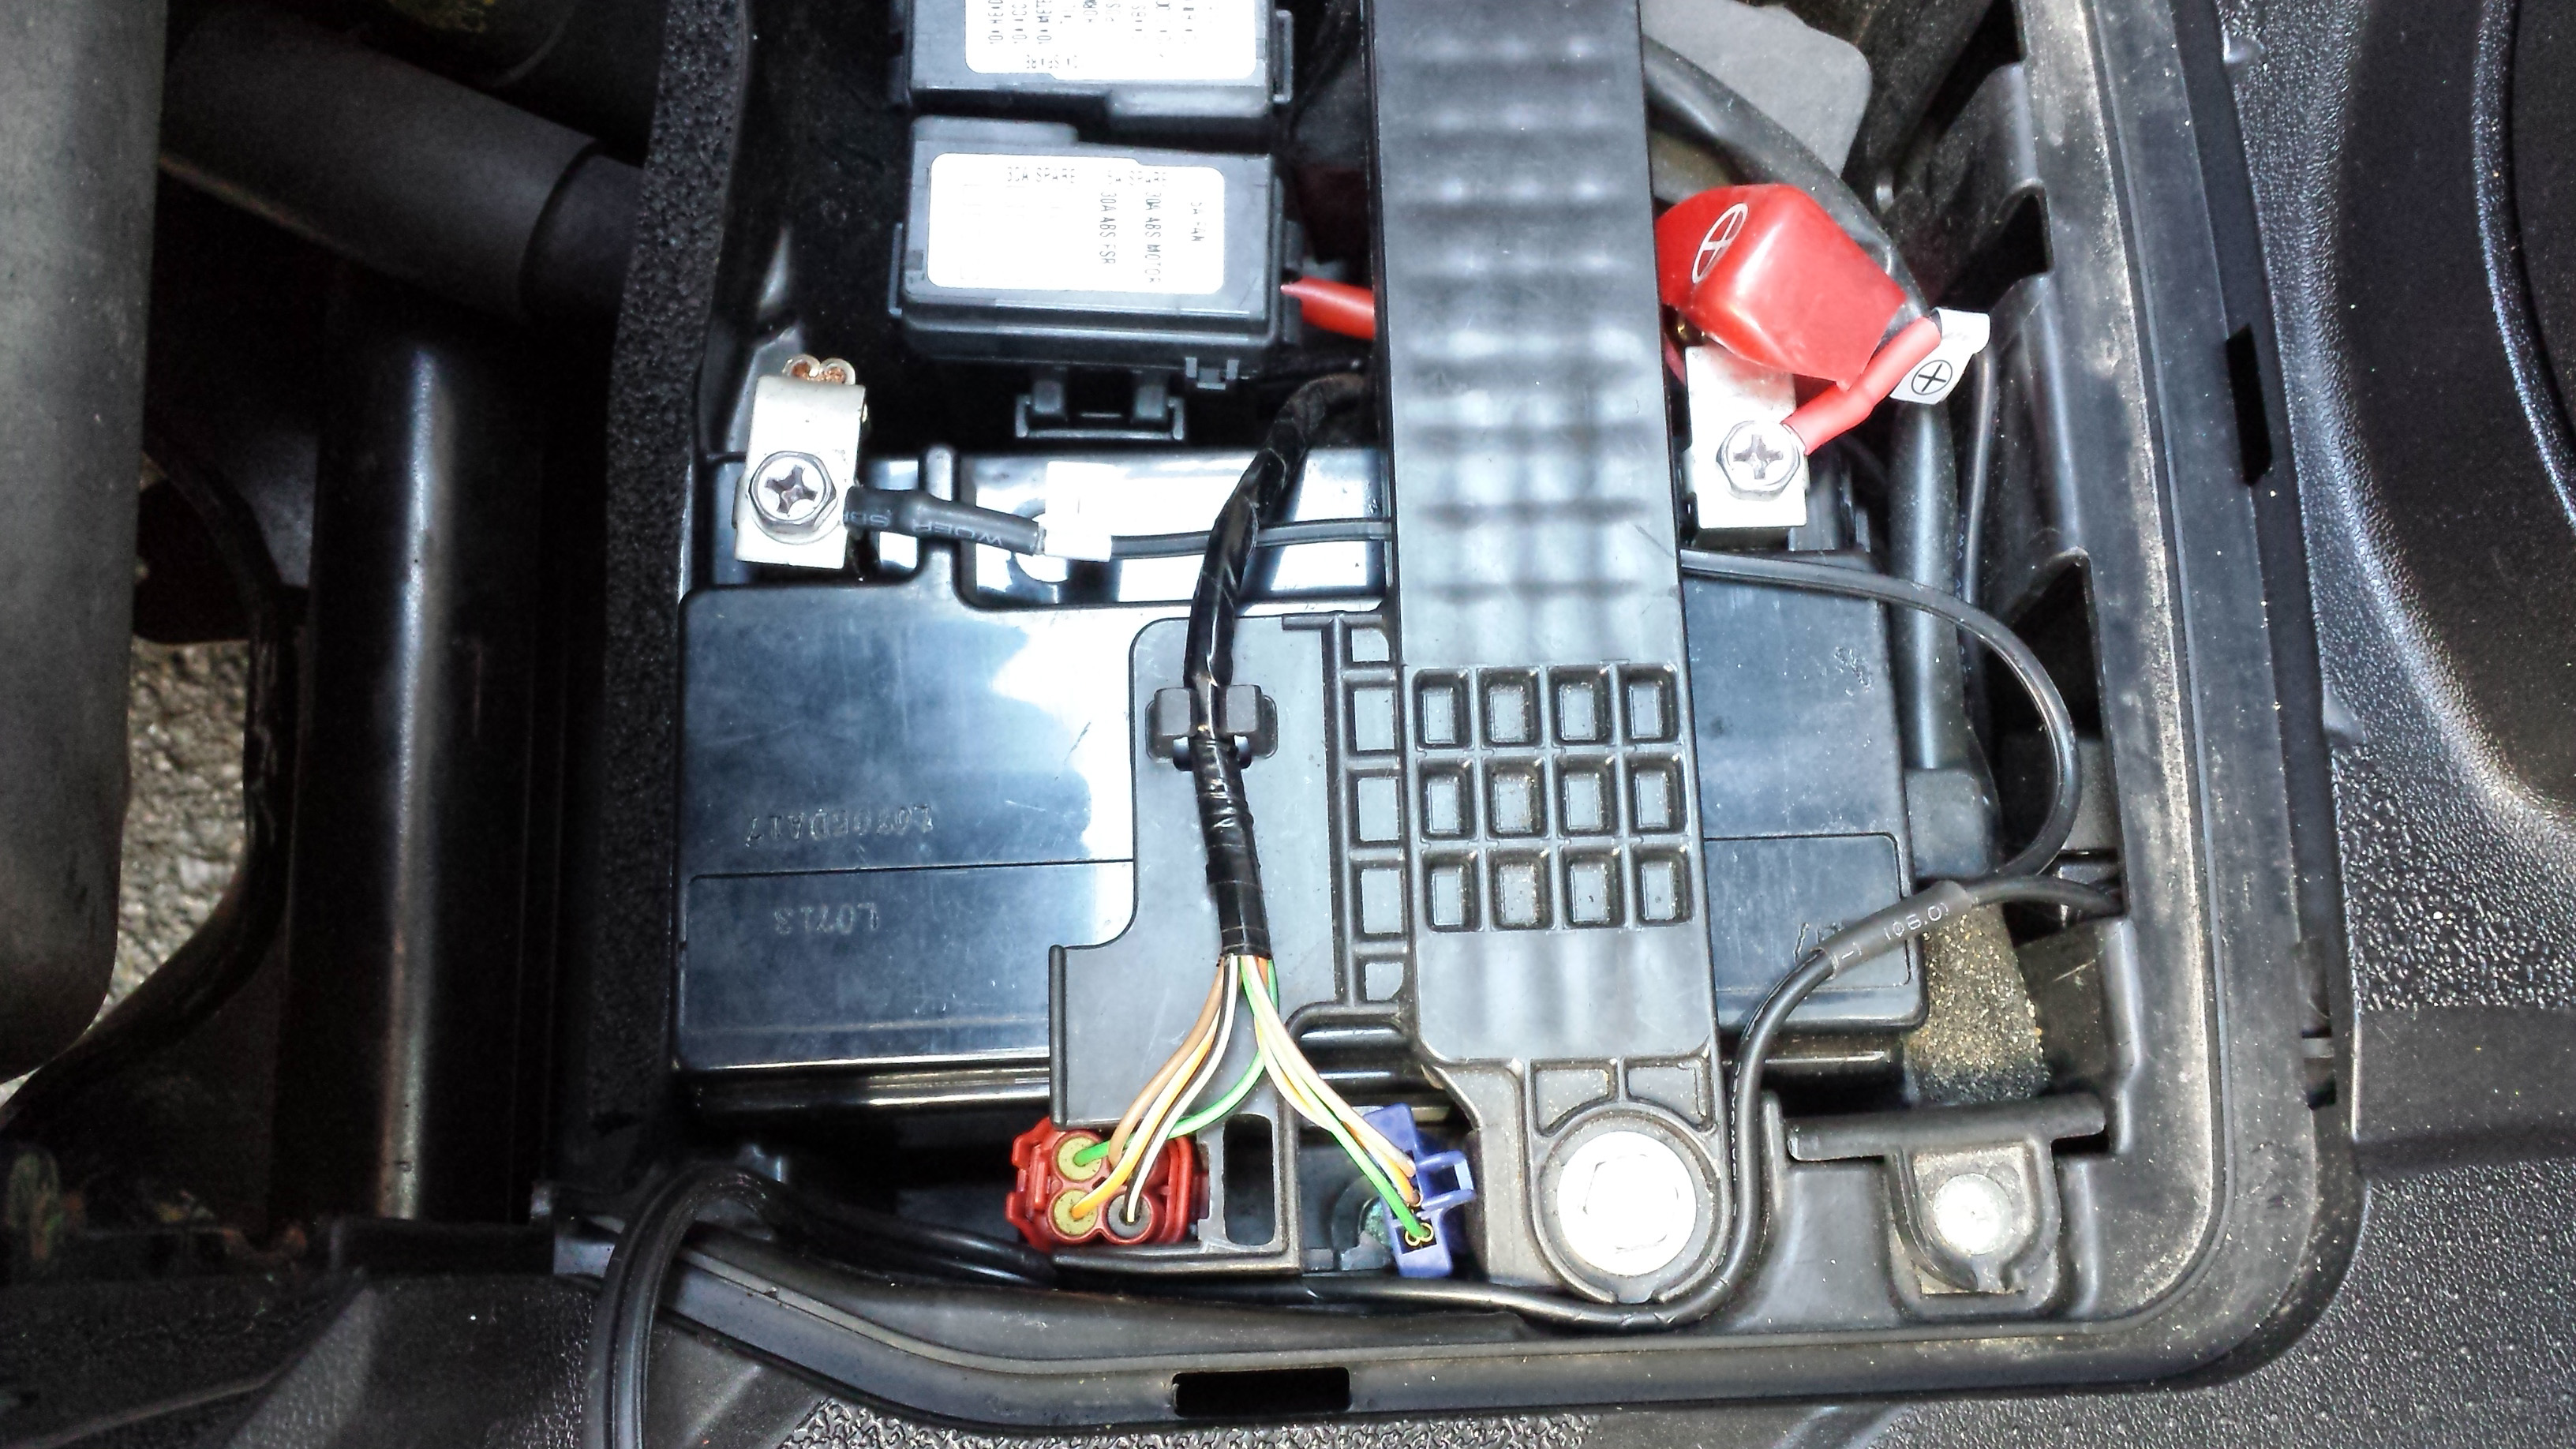 Wiring in an Oxford HotVest to a Honda SH300i